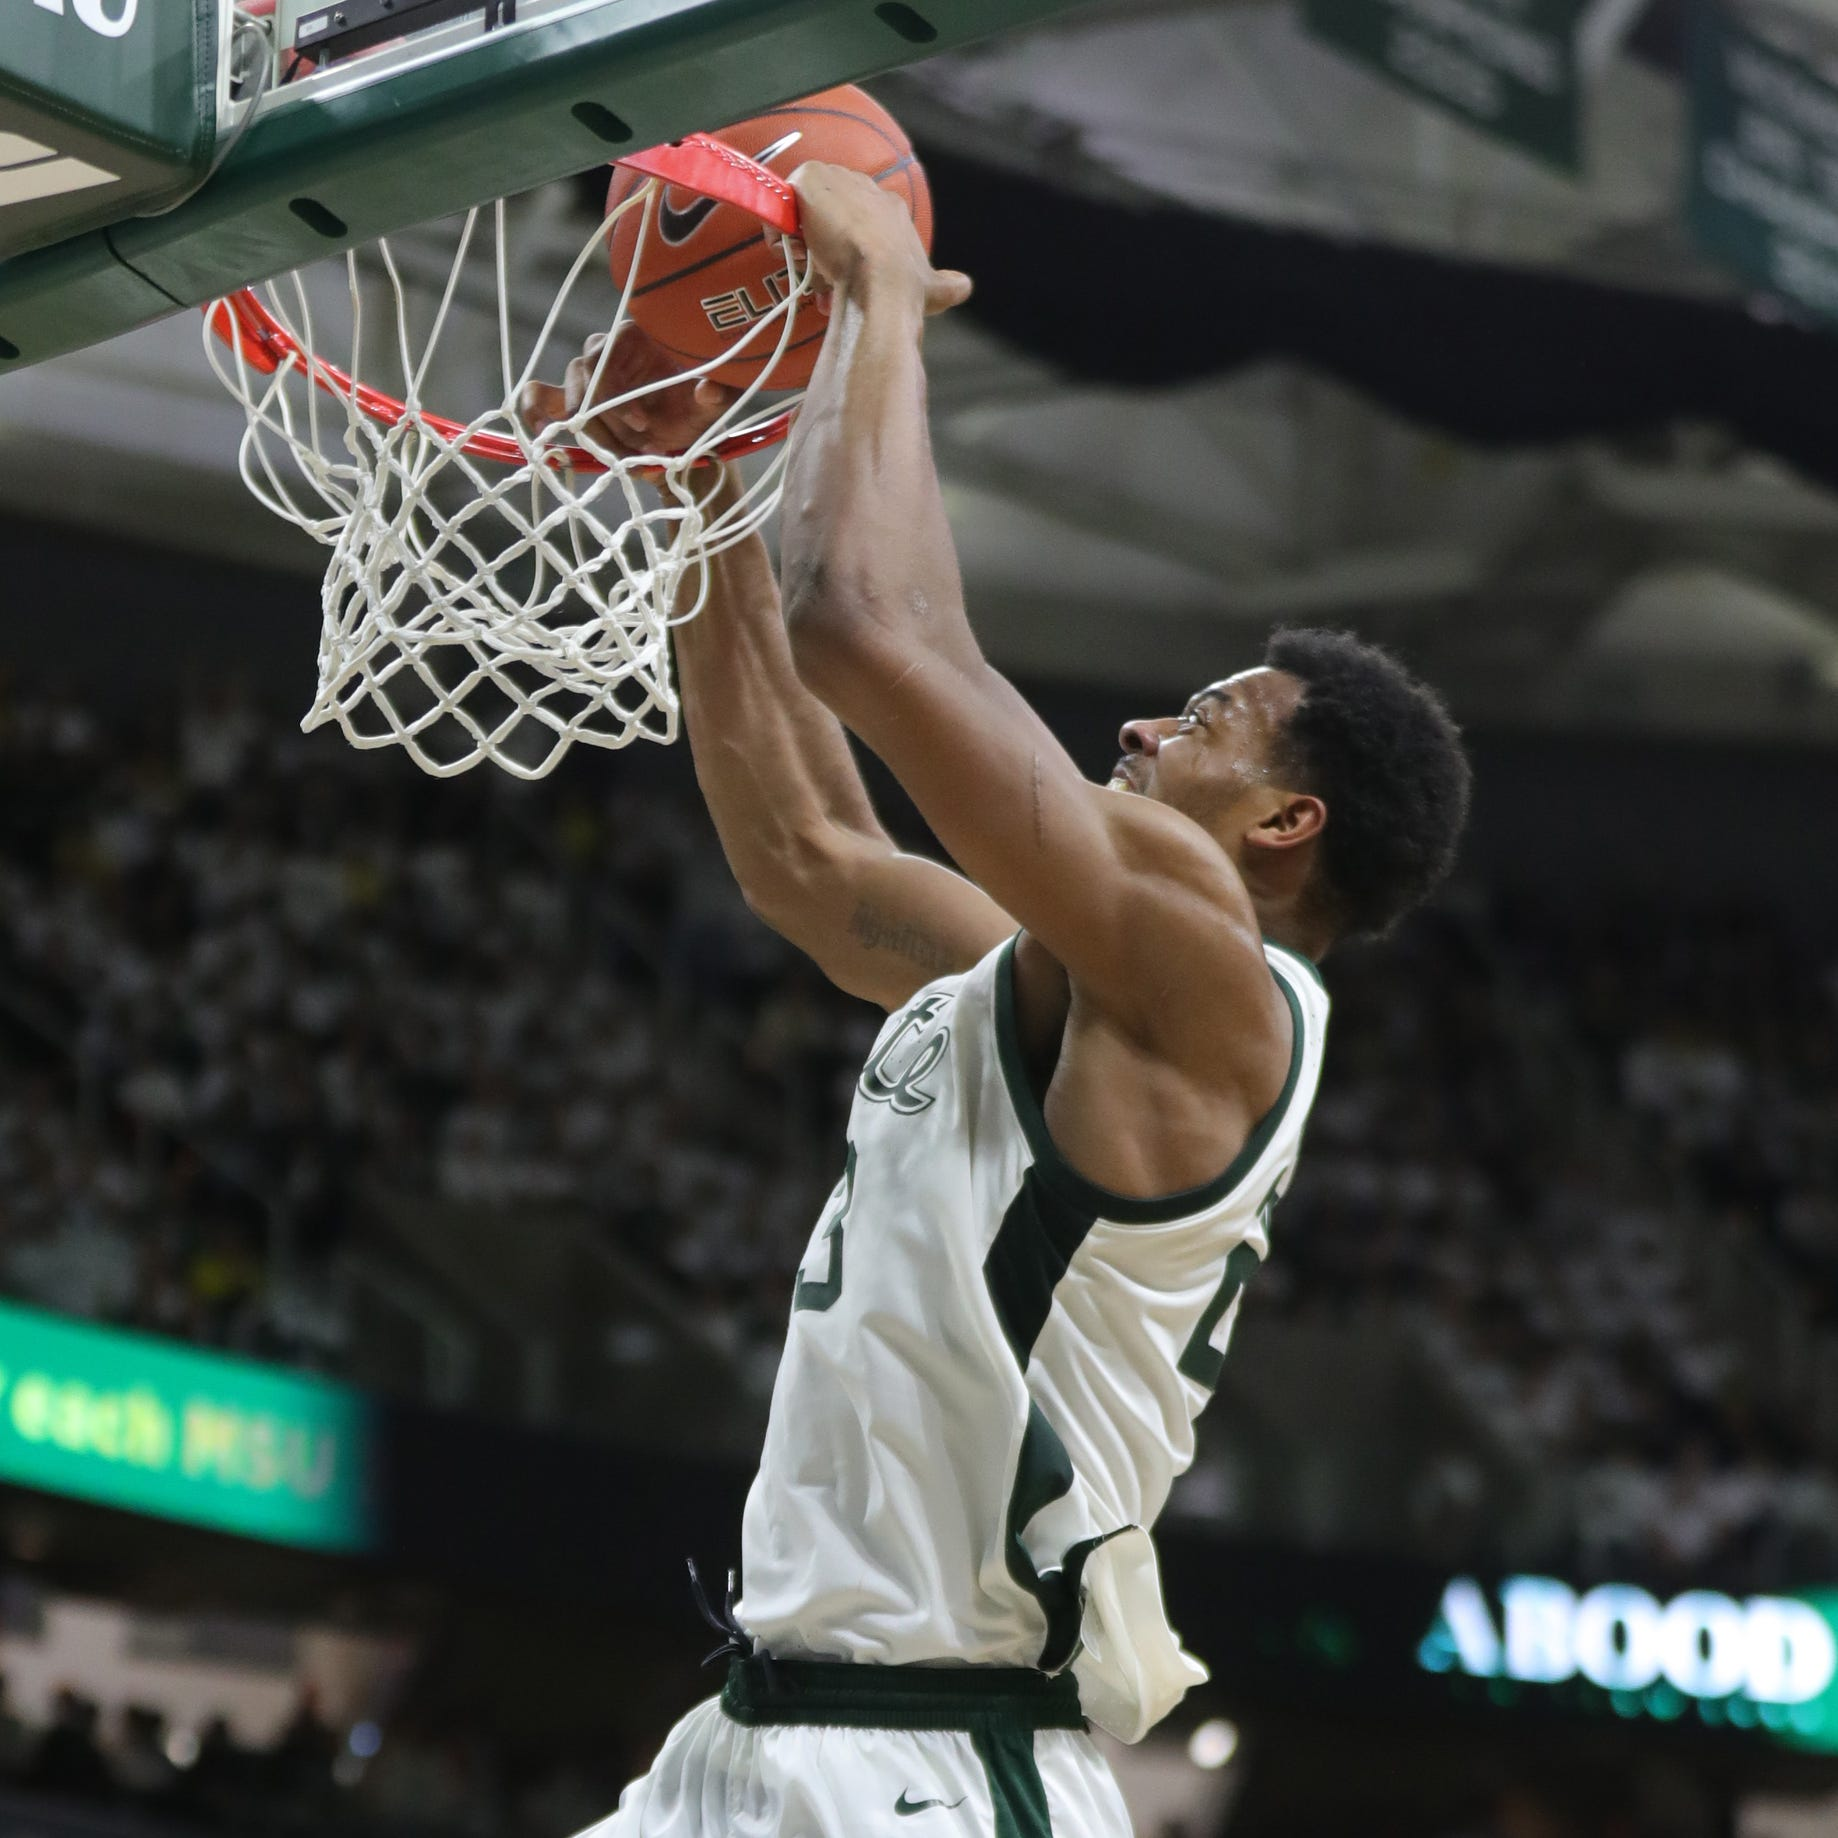 Michigan State's Xavier Tillman proved Tom Izzo wrong vs. U-M (maybe)